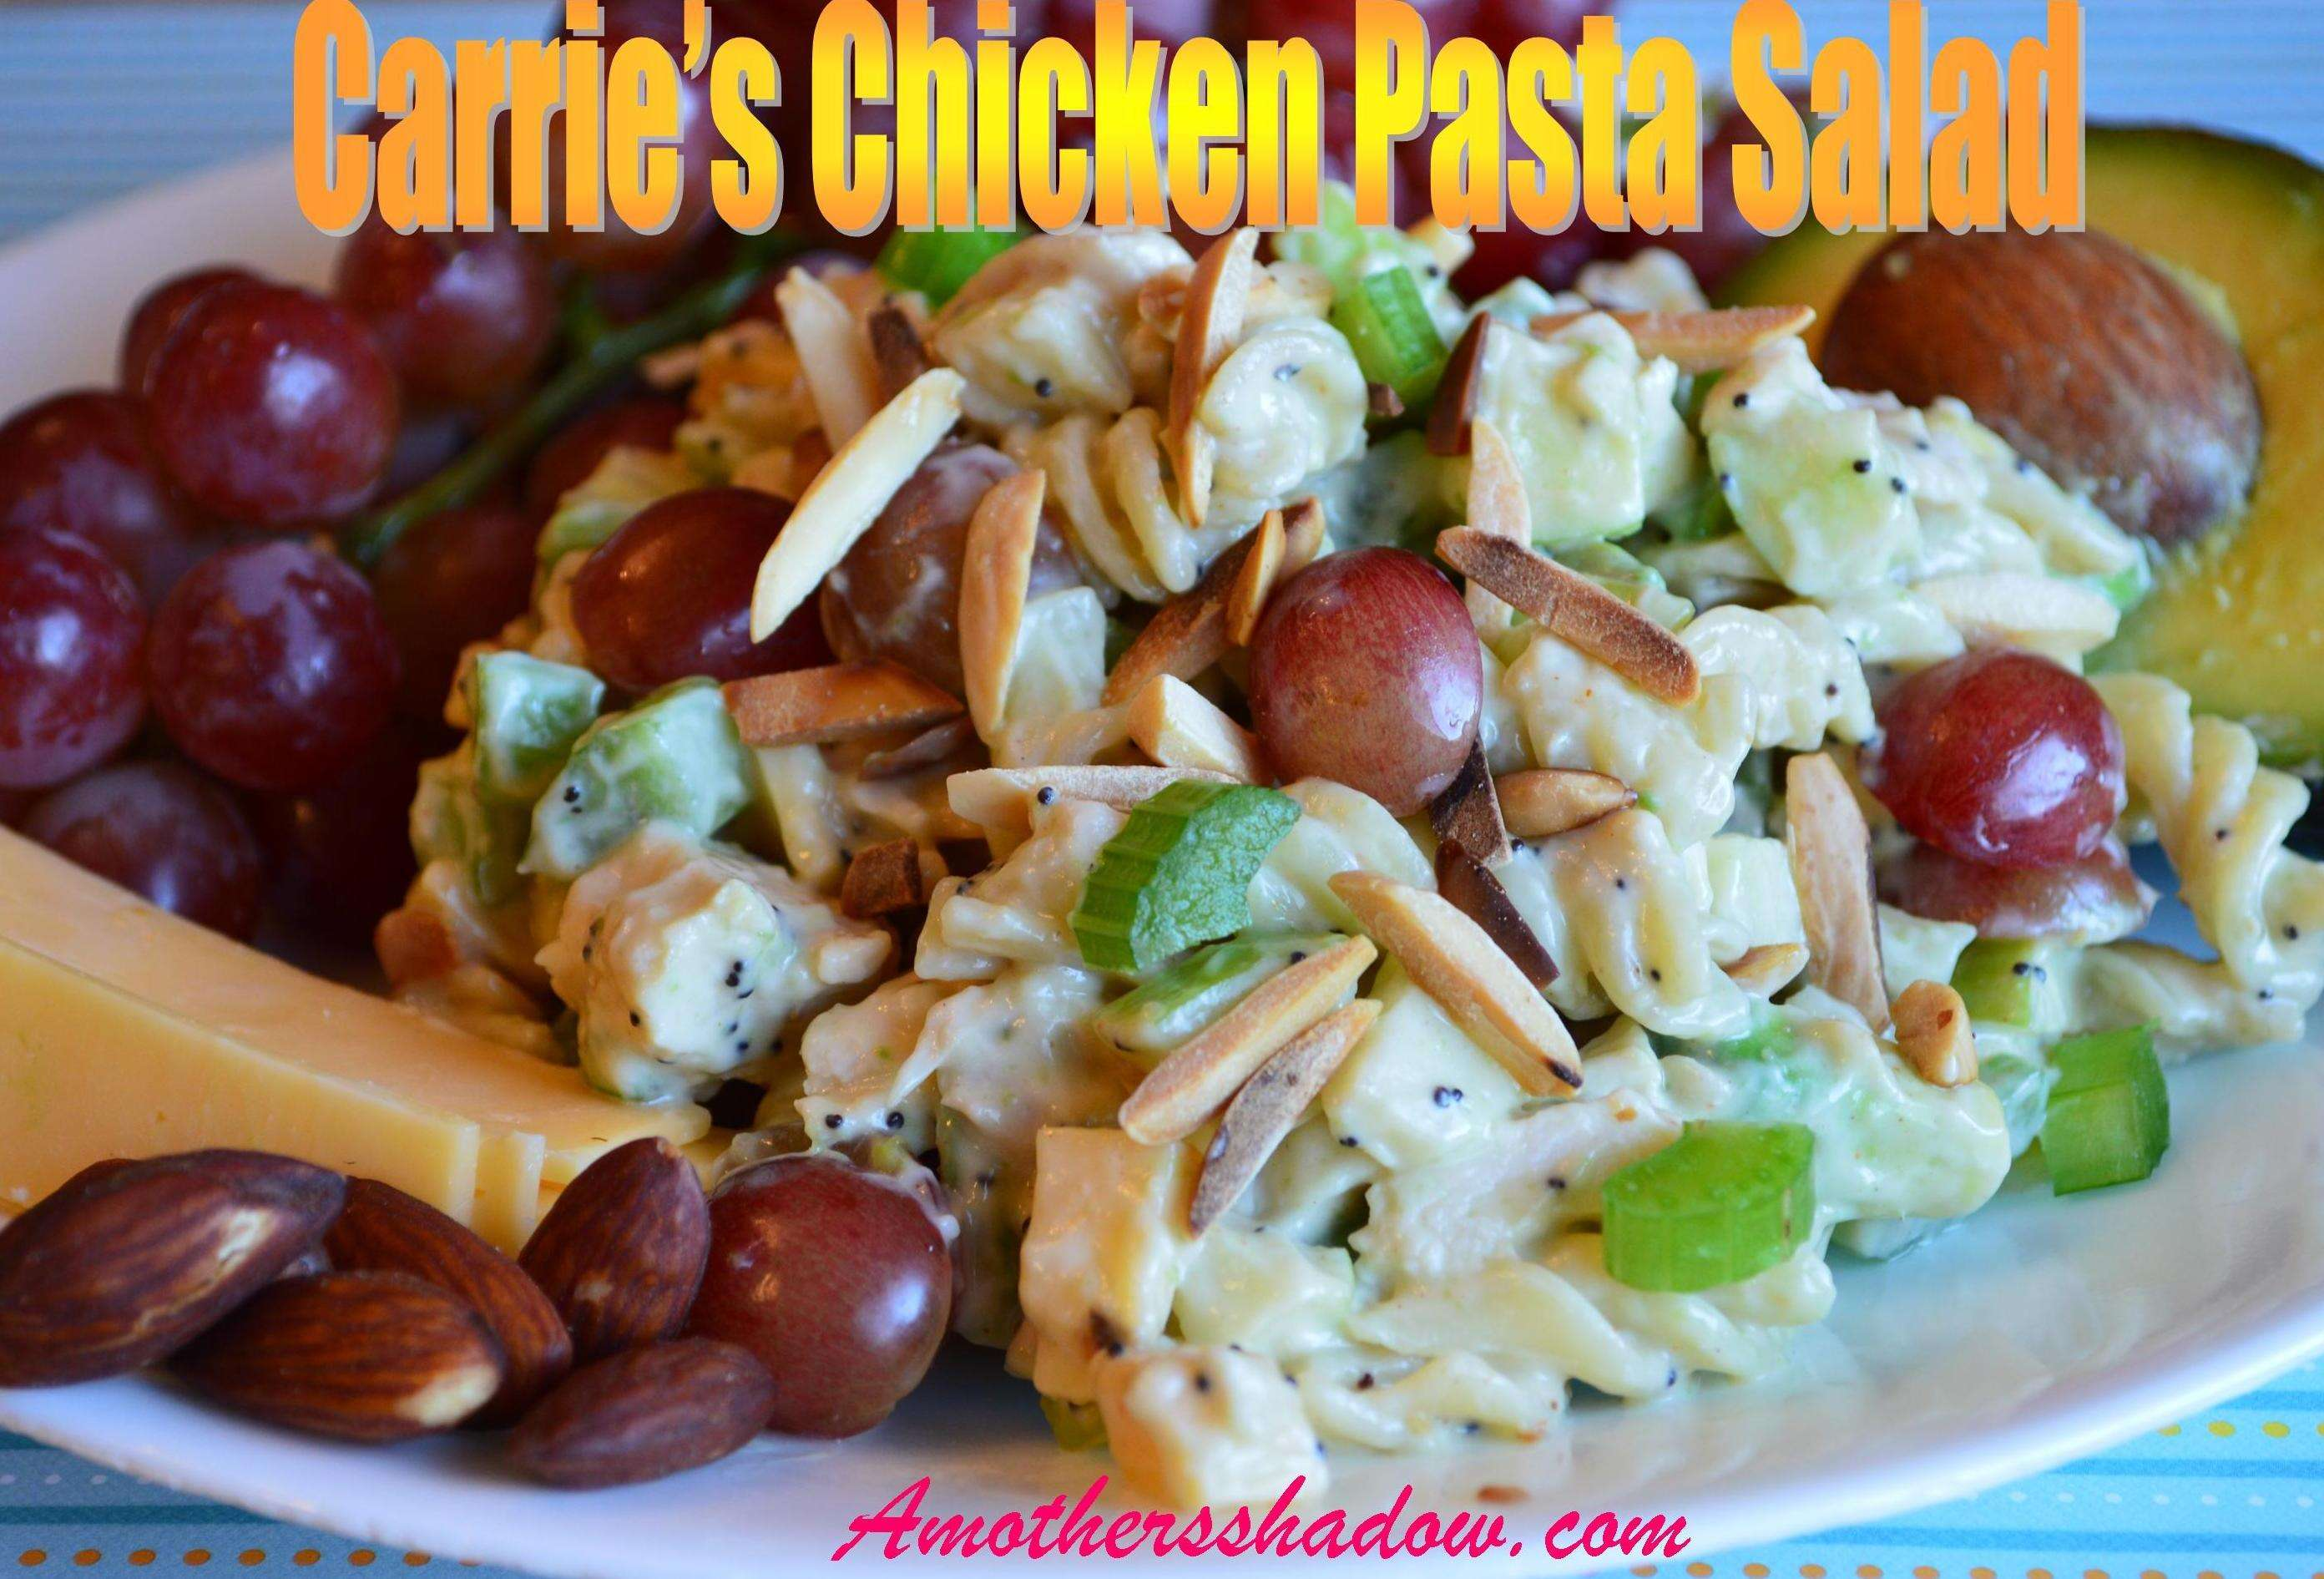 A cold pasta salad using rotini pasta that has grapes, celery, crisp apples, smokey Gouda cheese and toasted almonds. All topped with a creamy poppy seed mayonnaise dressing for a perfect dish